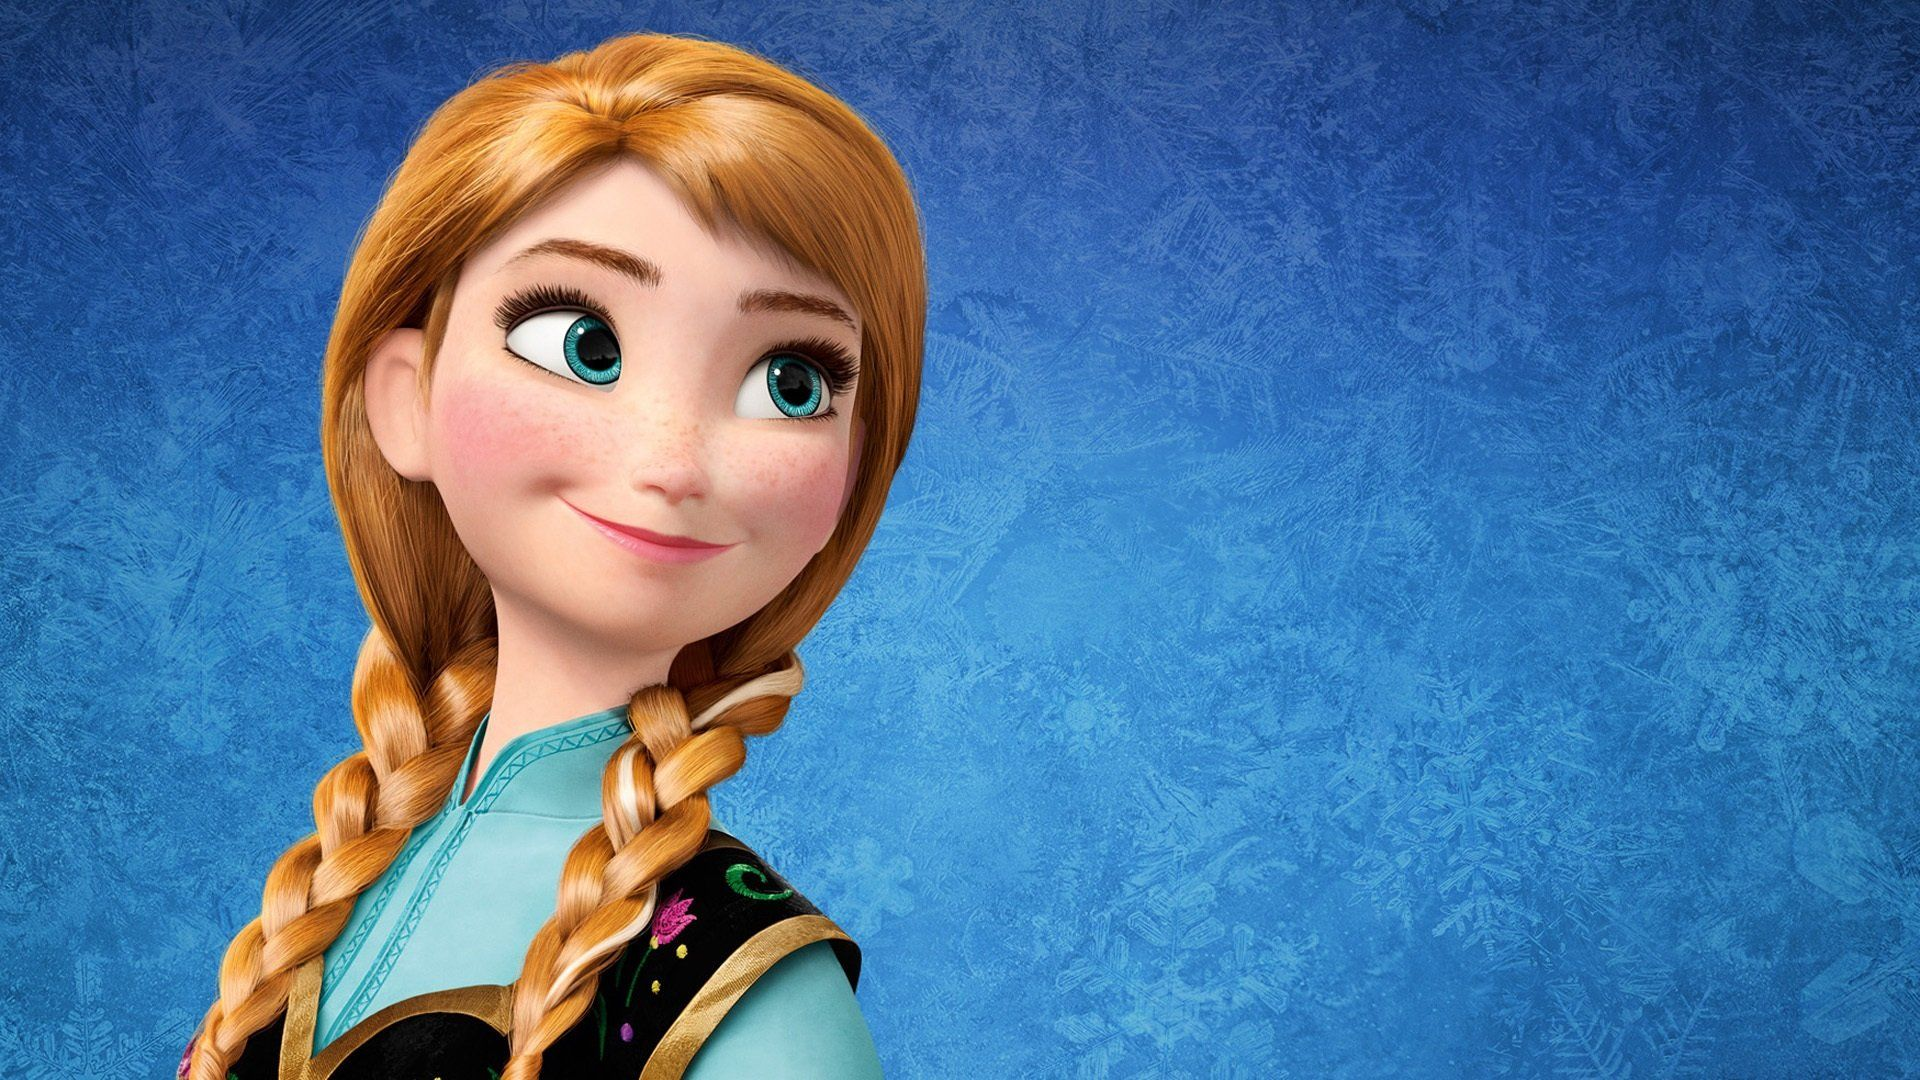 Anna Frozen Wallpapers Top Free Anna Frozen Backgrounds